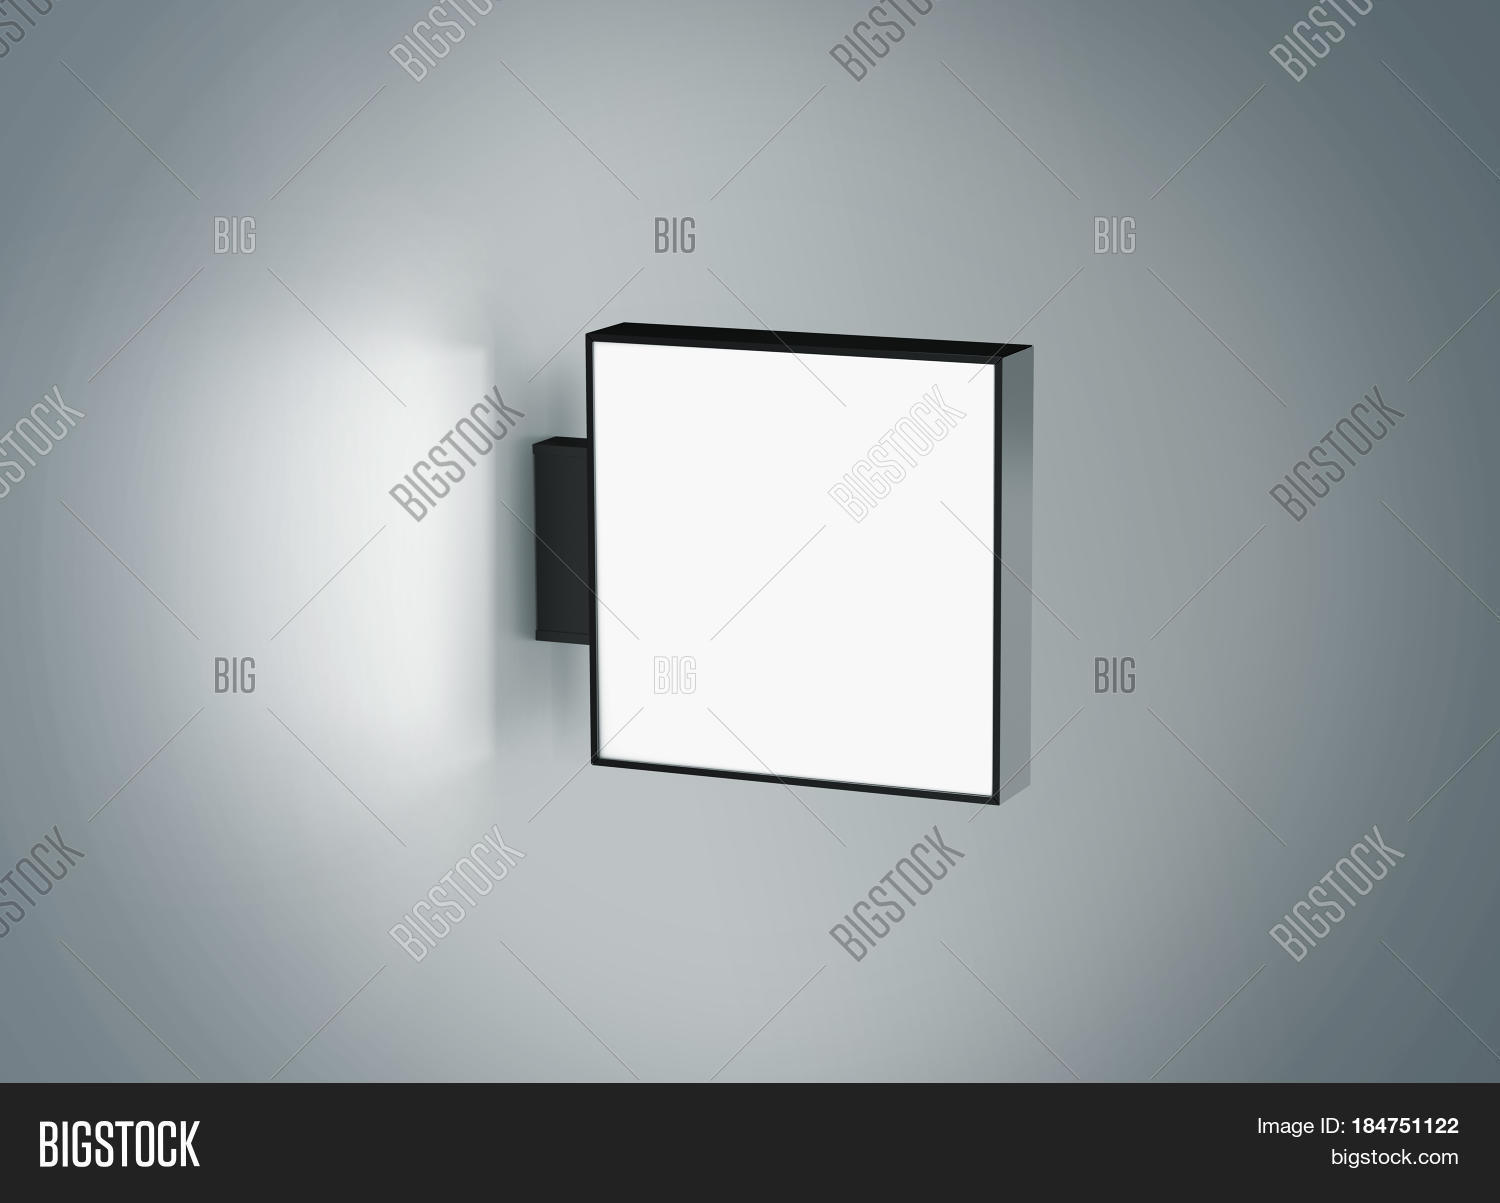 Blank Store Signage Design Mock Up Isolated 3d Rendering Empty Square Light Box Mockup